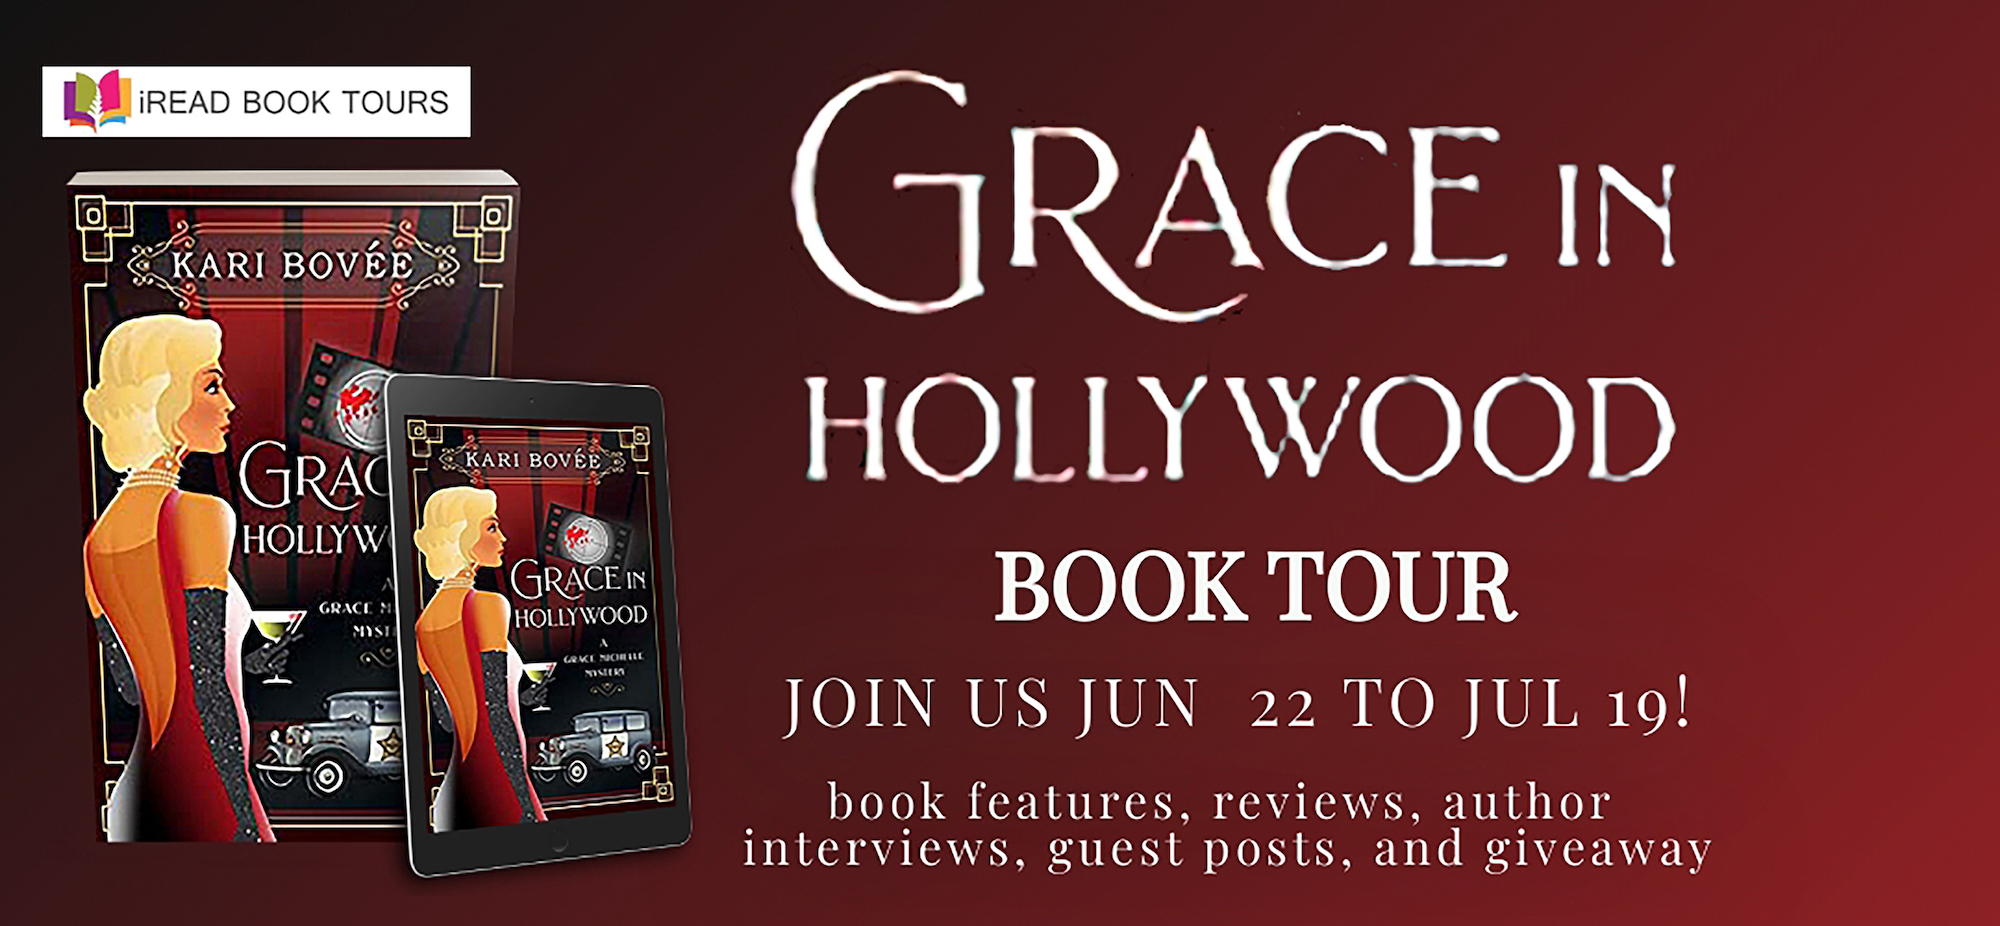 Grace in Hollywood Tour Banners